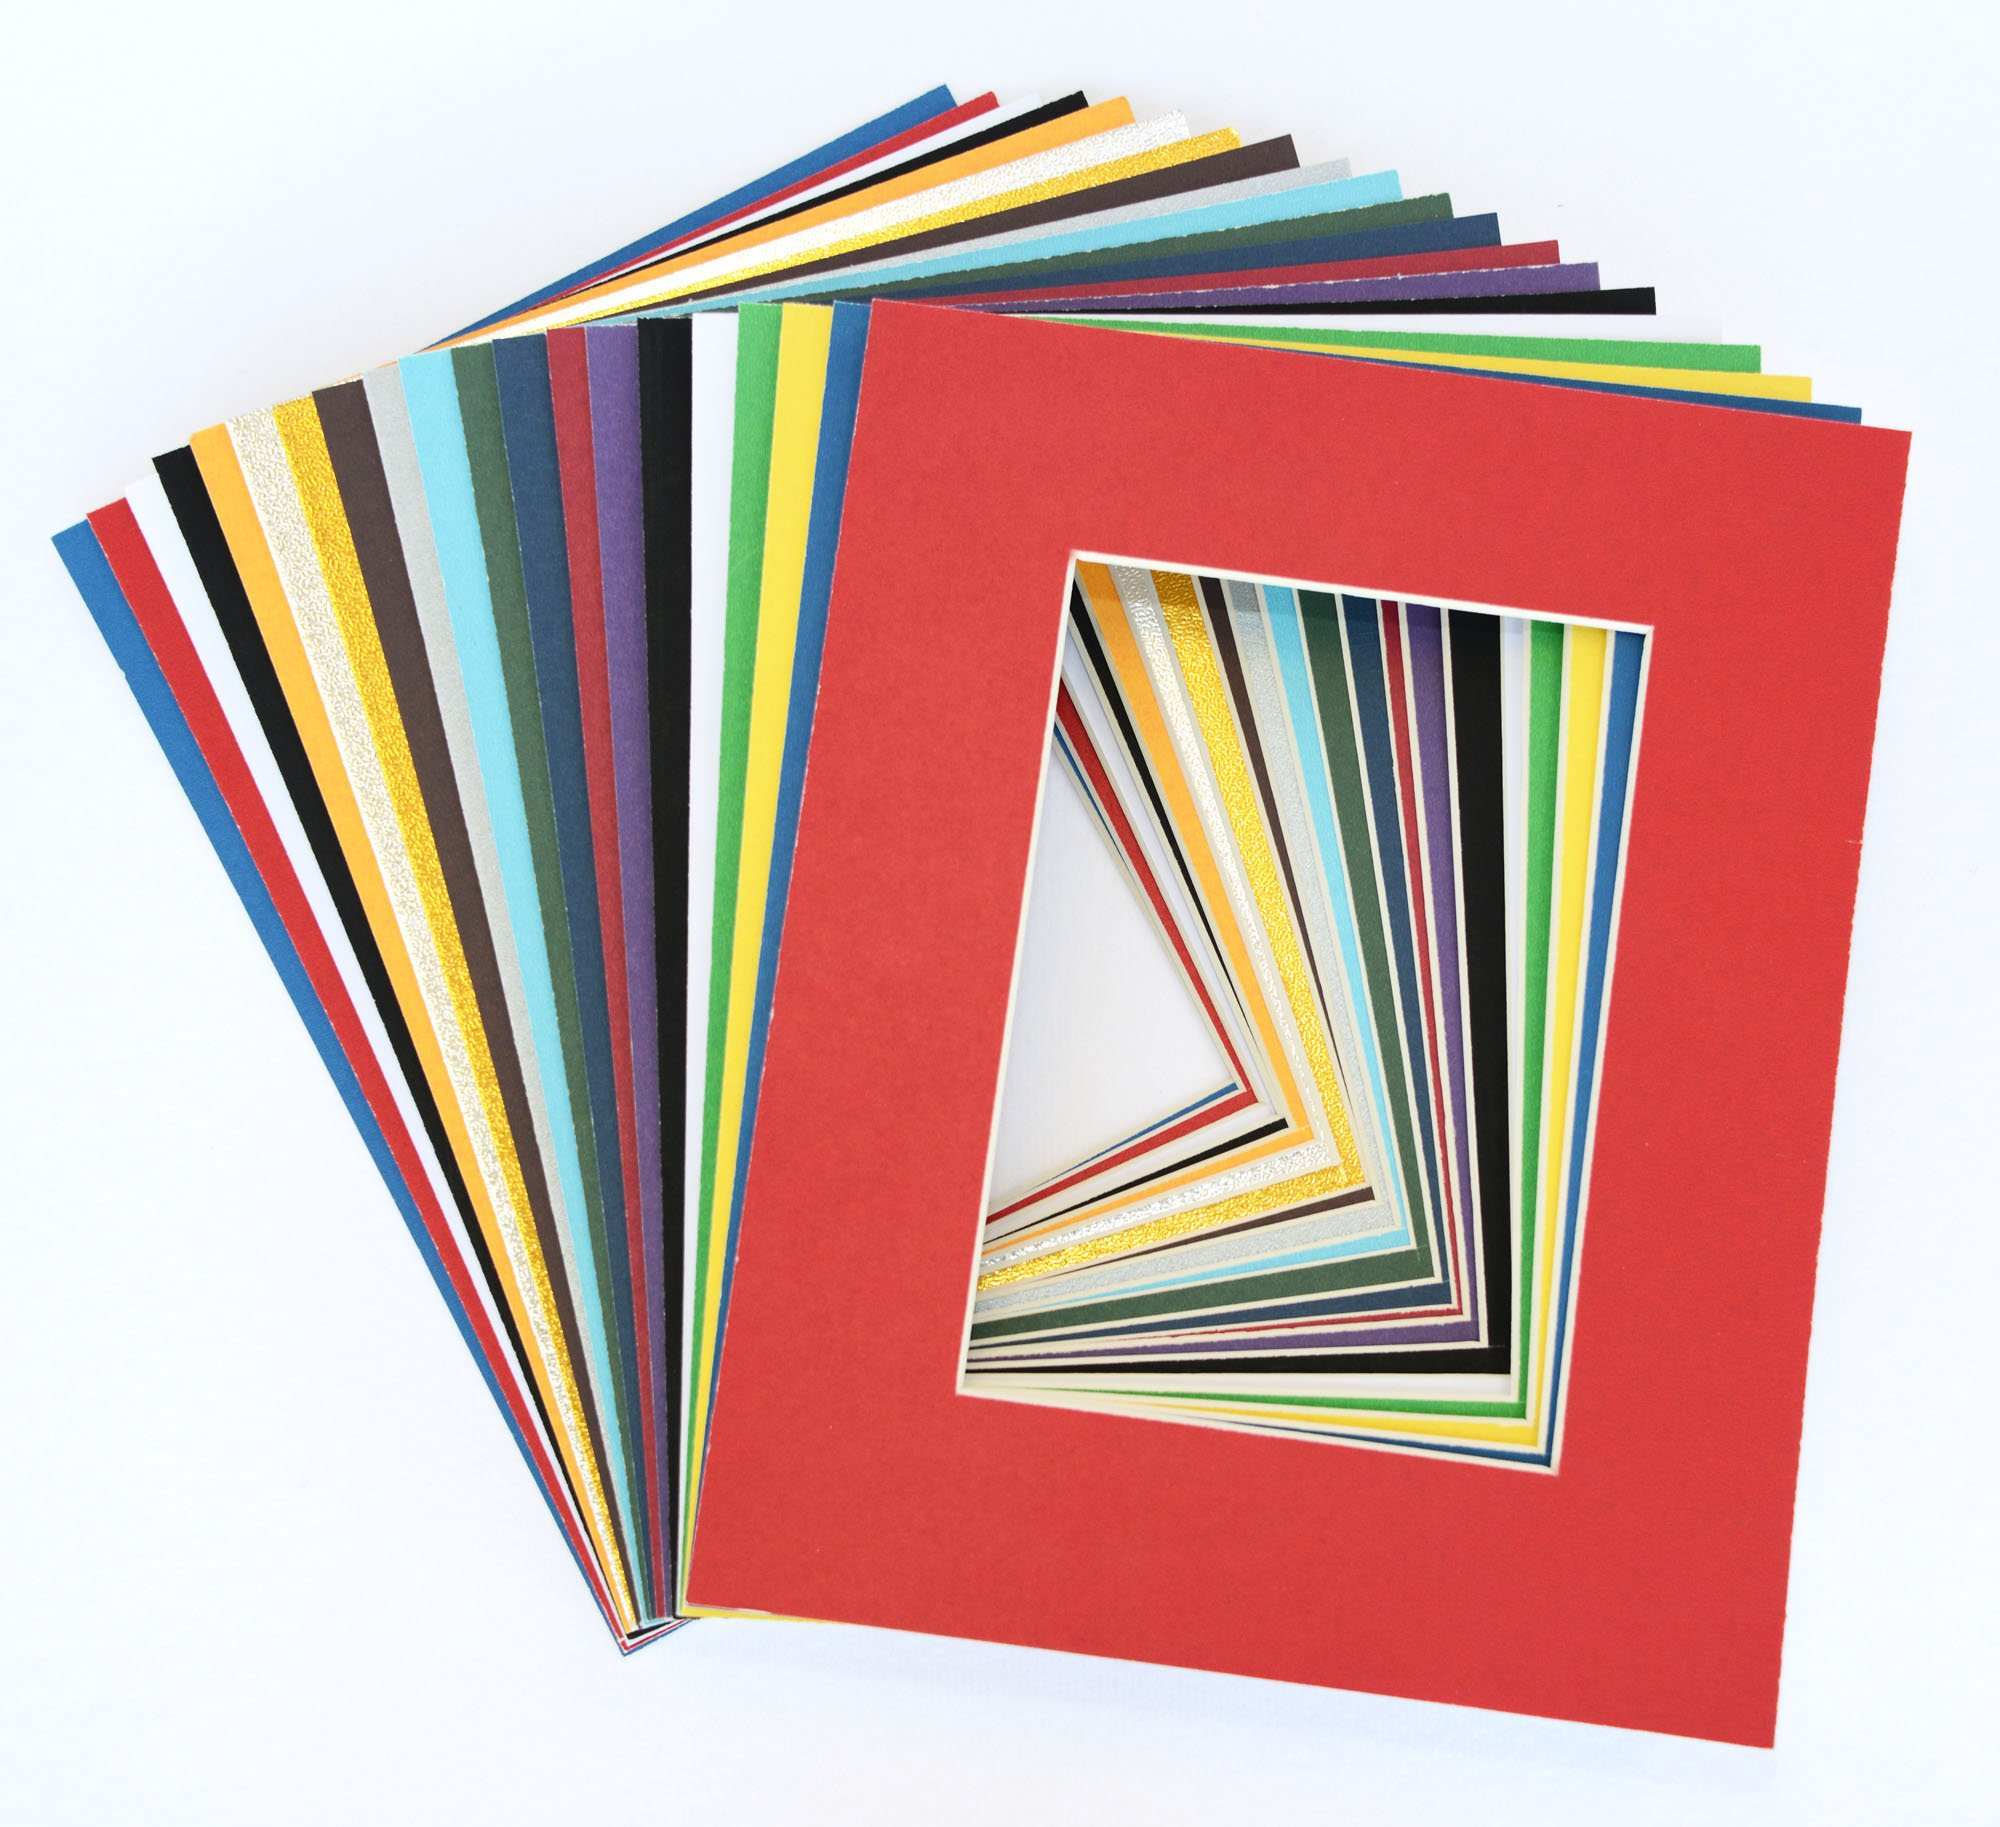 Pack of 20 MIXED COLORS 11x14 Picture Mats Matting with White Core Bevel Cut for 8x10 Pictures by Unknown